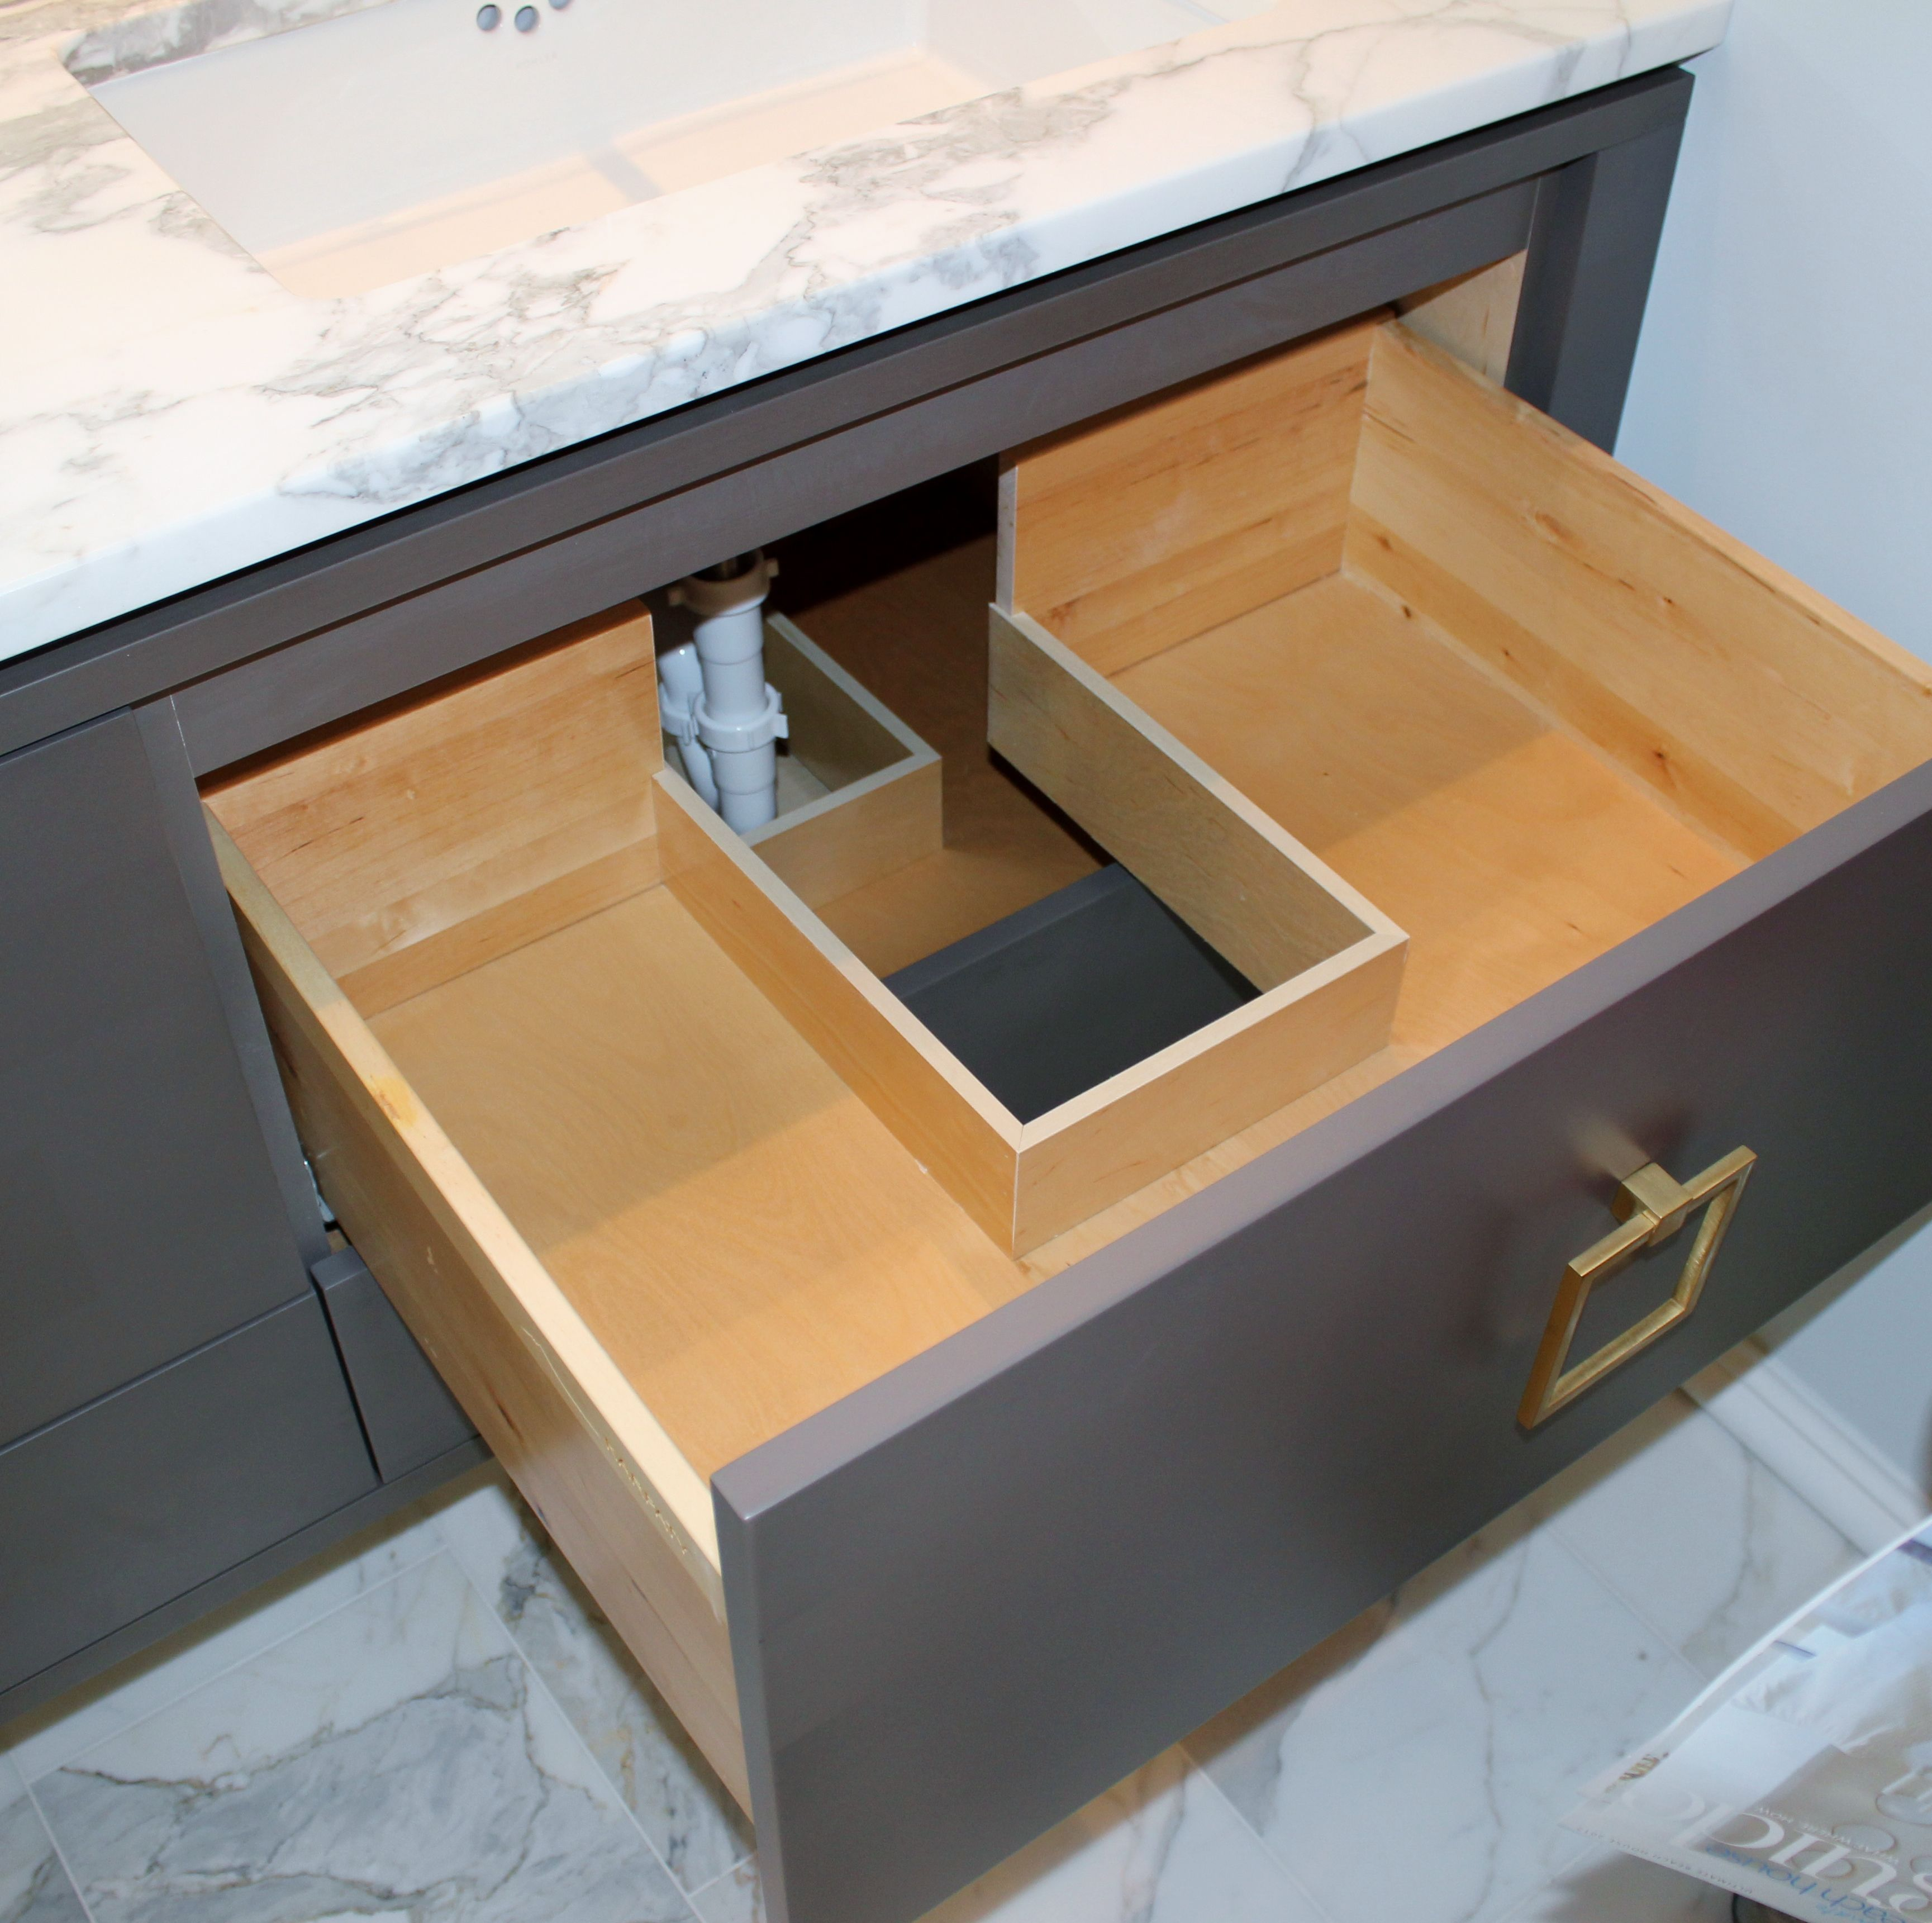 10 Amazing Ideas To Utilize The Space Under The Sink For Storage: Smart Use Of Wasted Space Around Plumbing. All Cabinets